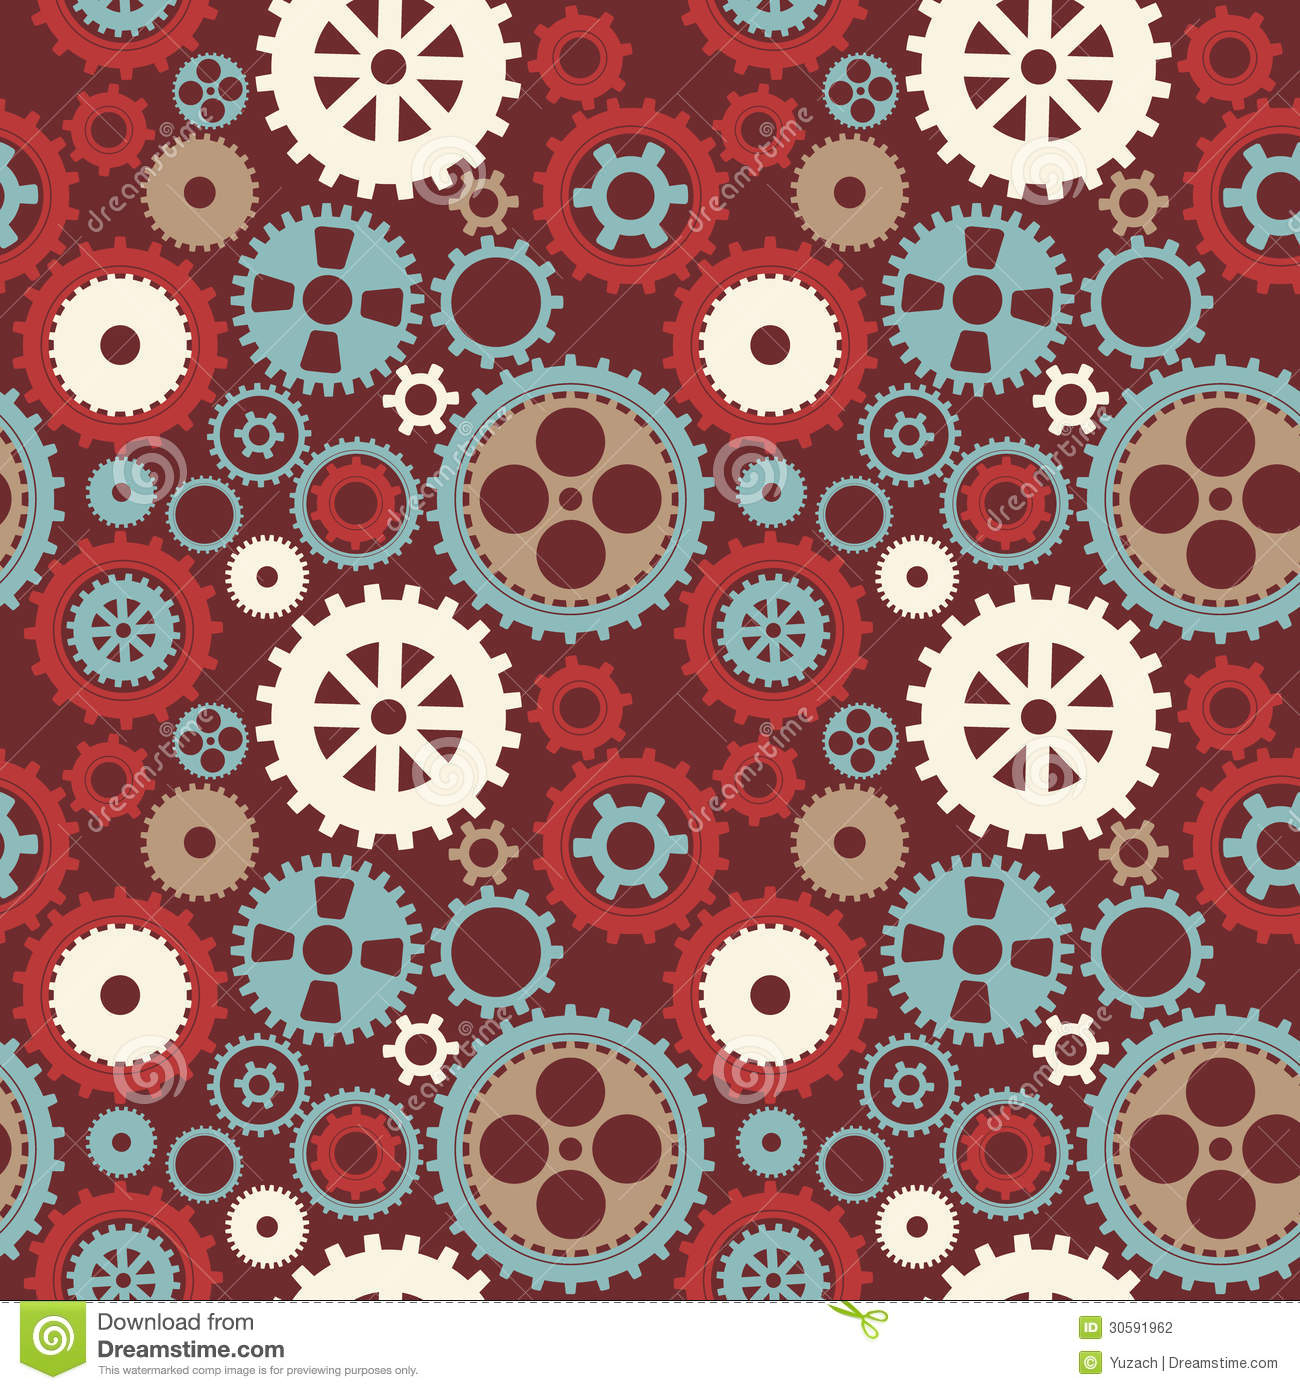 Gear Cog Silhouette Seamless Pattern Vector Illustration